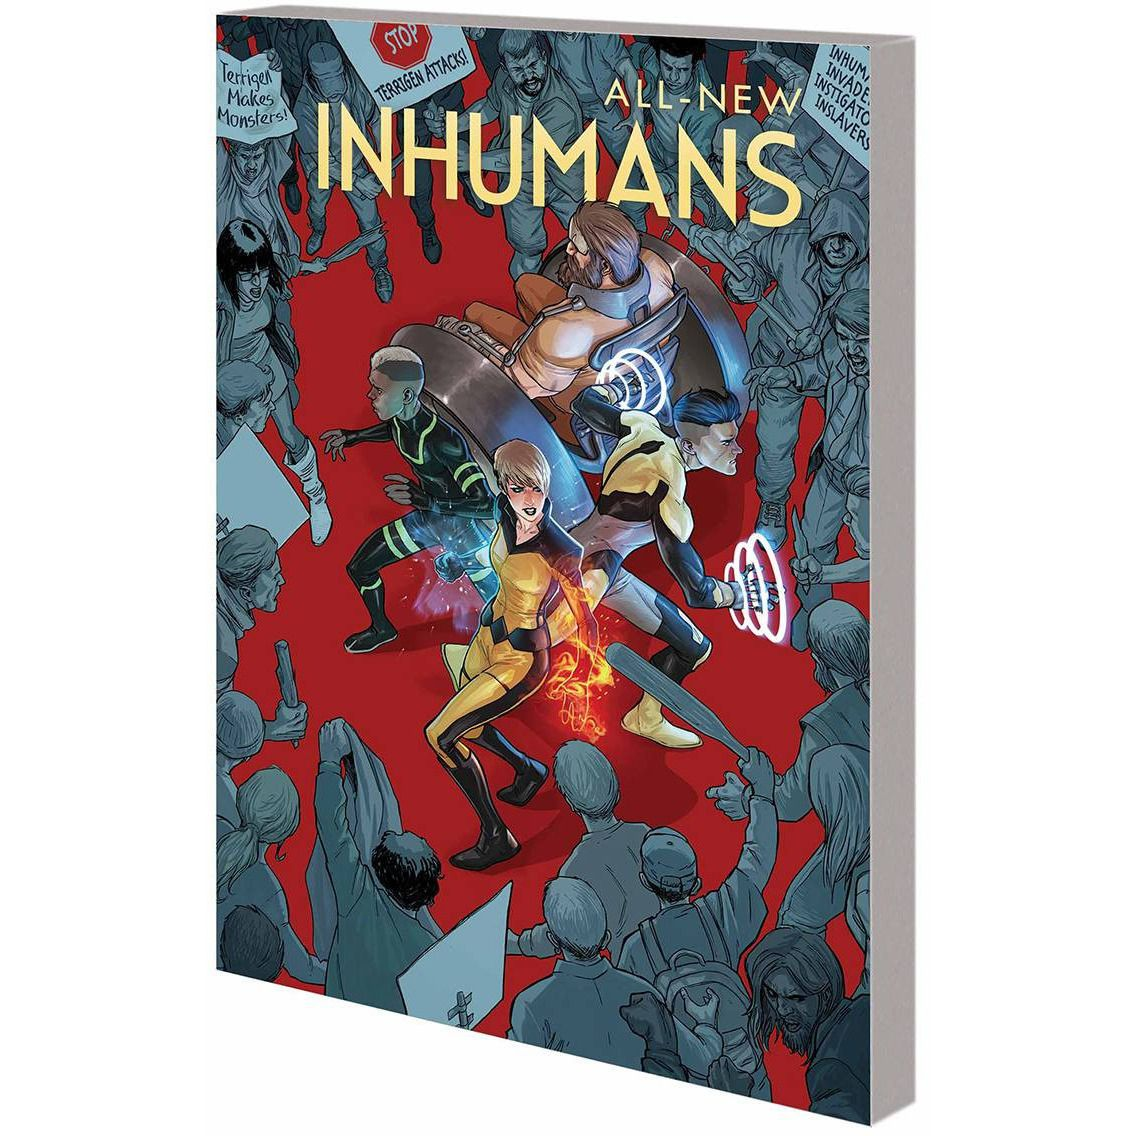 All New Inhumans TP Vol 1 Global Outreach Uncanny!